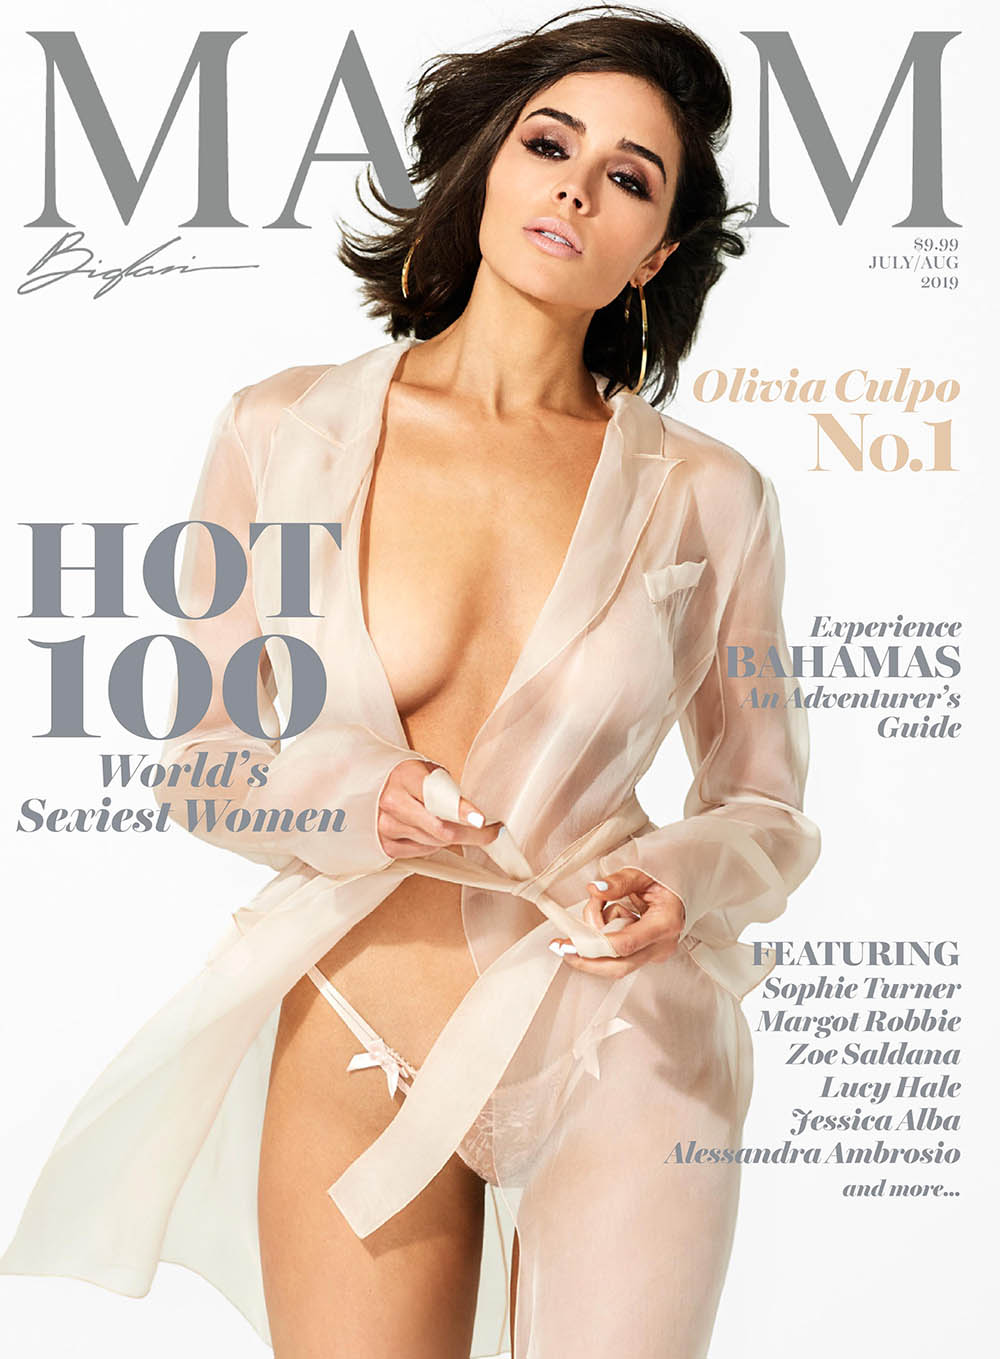 Olivia-Culpo-covers-Maxim-US-July-August-2019-by-Gilles-Bensimon-1.jpg